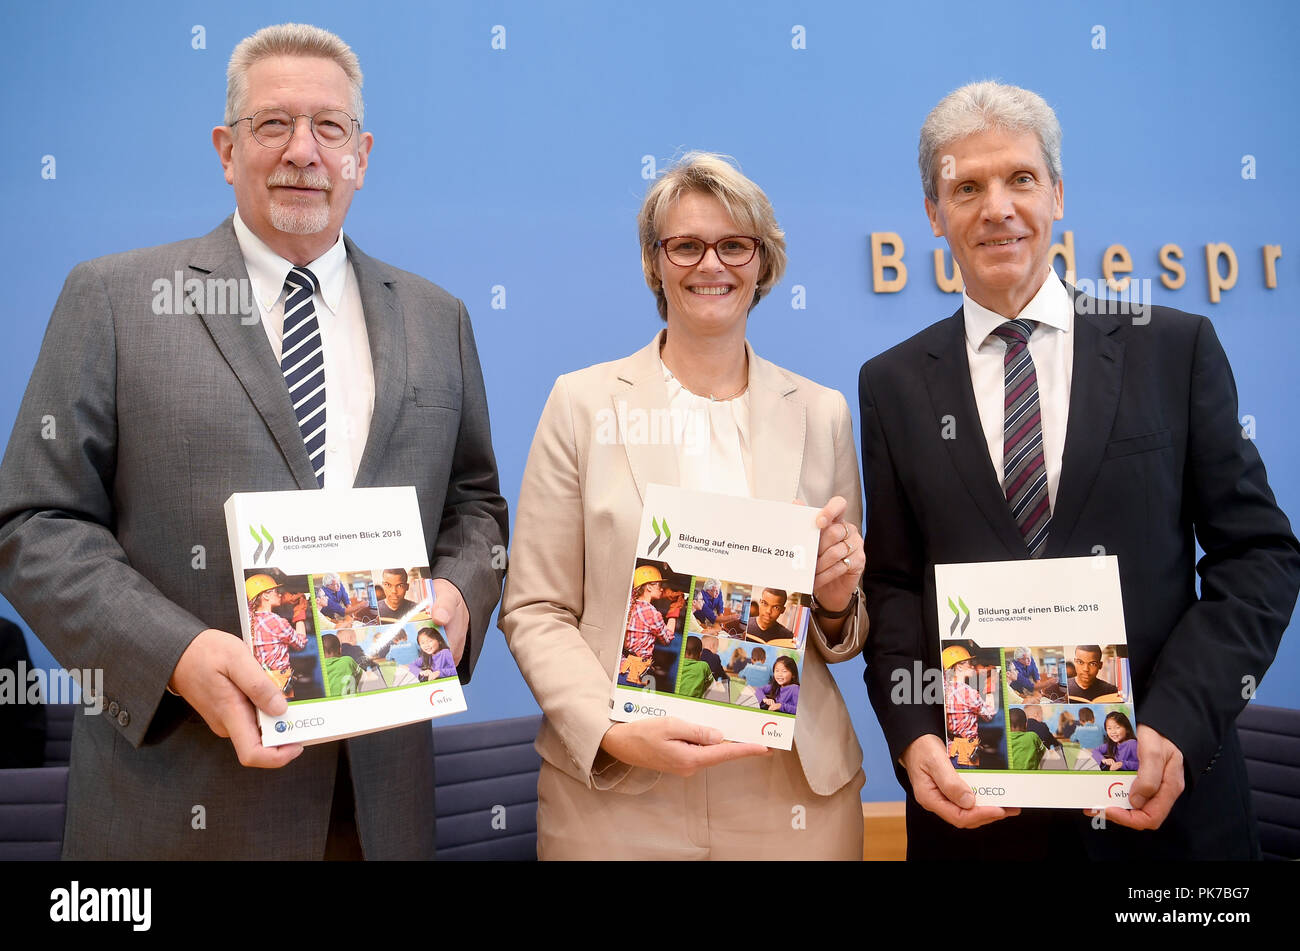 11 September 2018, Berlin: 11.09.2018, Berlin: Heino von Meyer, Head of the OECD Berlin Centre (l-r), Anja Karliczek (CDU), Federal Minister of Education and Helmut Holter, President of the Conference of Education Ministers, at the presentation of the OECD report 'Education at a Glance 2018'. OECD is the abbreviation for the Organisation for Economic Cooperation and Development. Photo: Britta Pedersen/dpa-Zentralbild/dpa - Stock Image